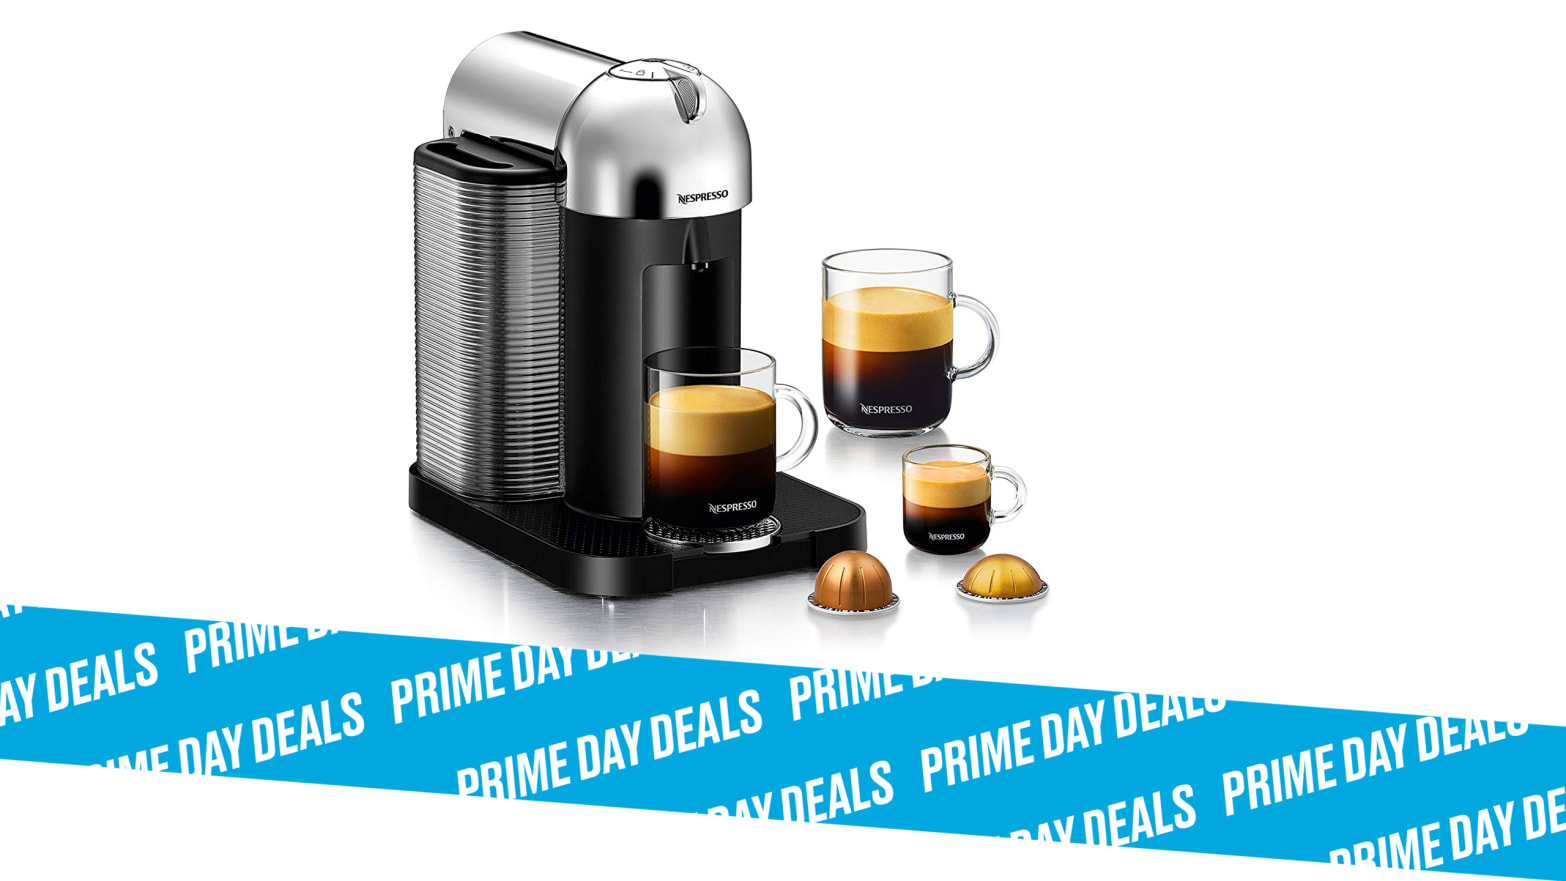 Save 25% on The Nespresso Vertuo Coffee and Espresso Machine by Breville During Prime Day